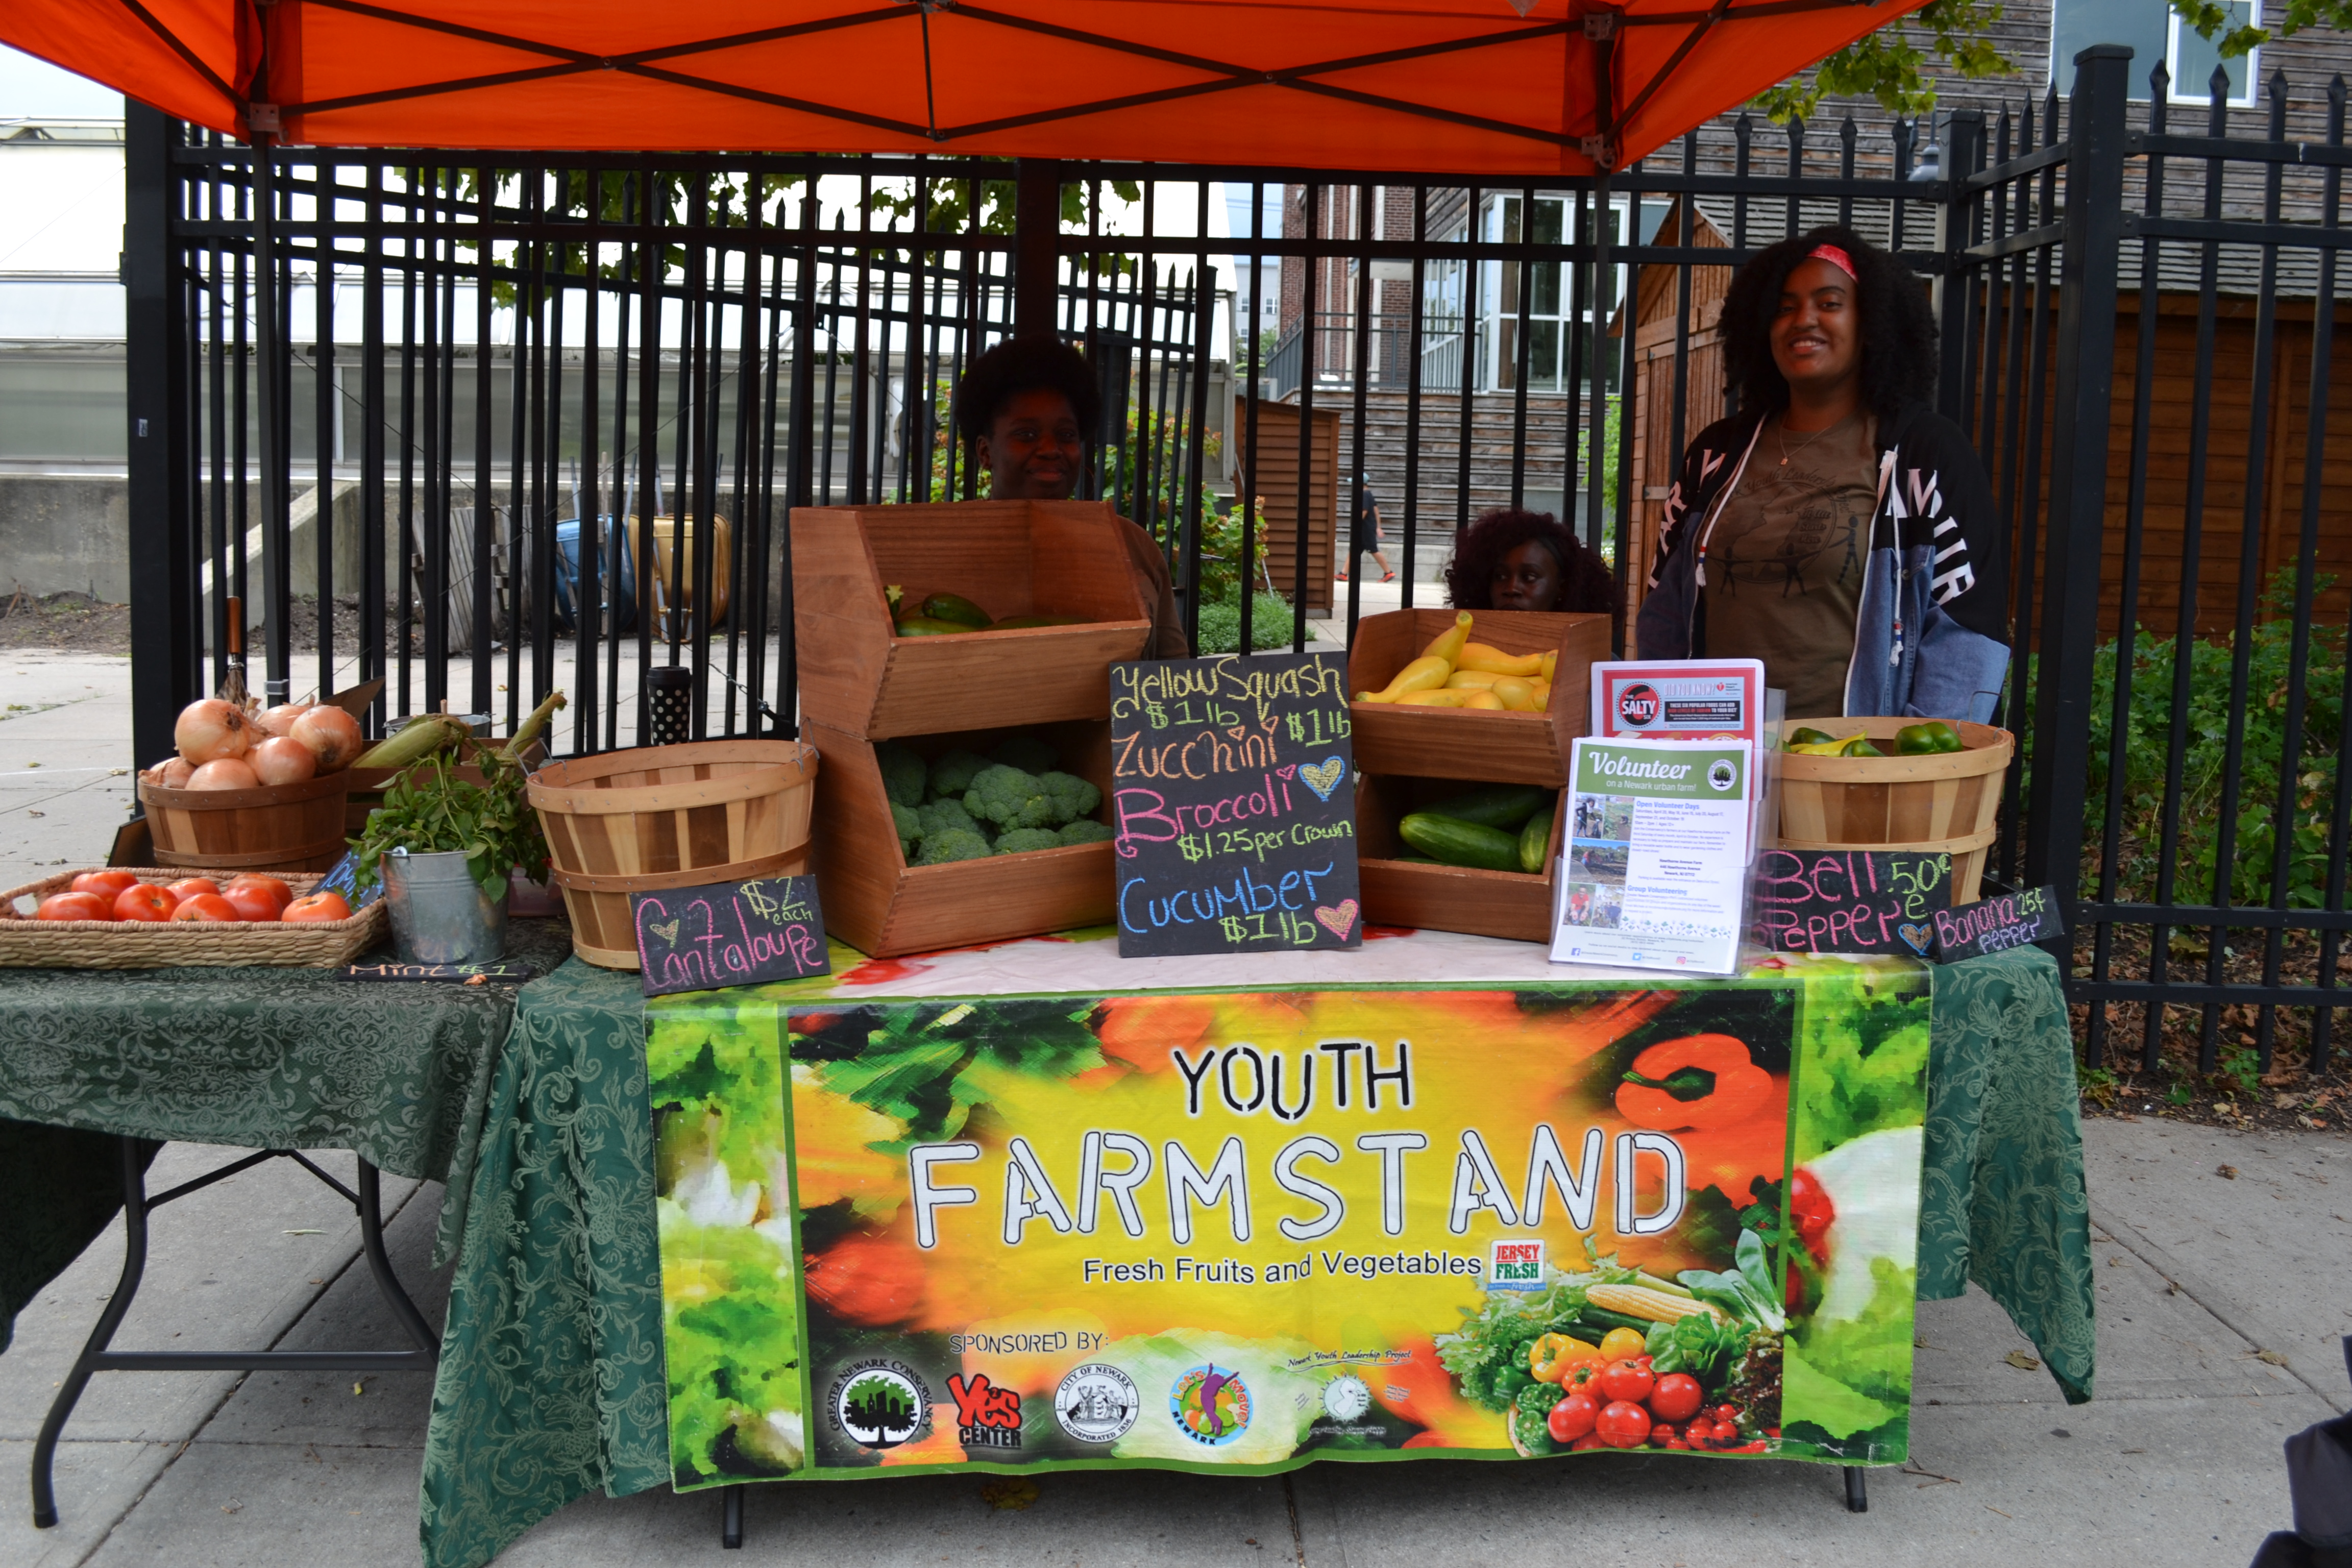 Support Local Urban Agriculture.